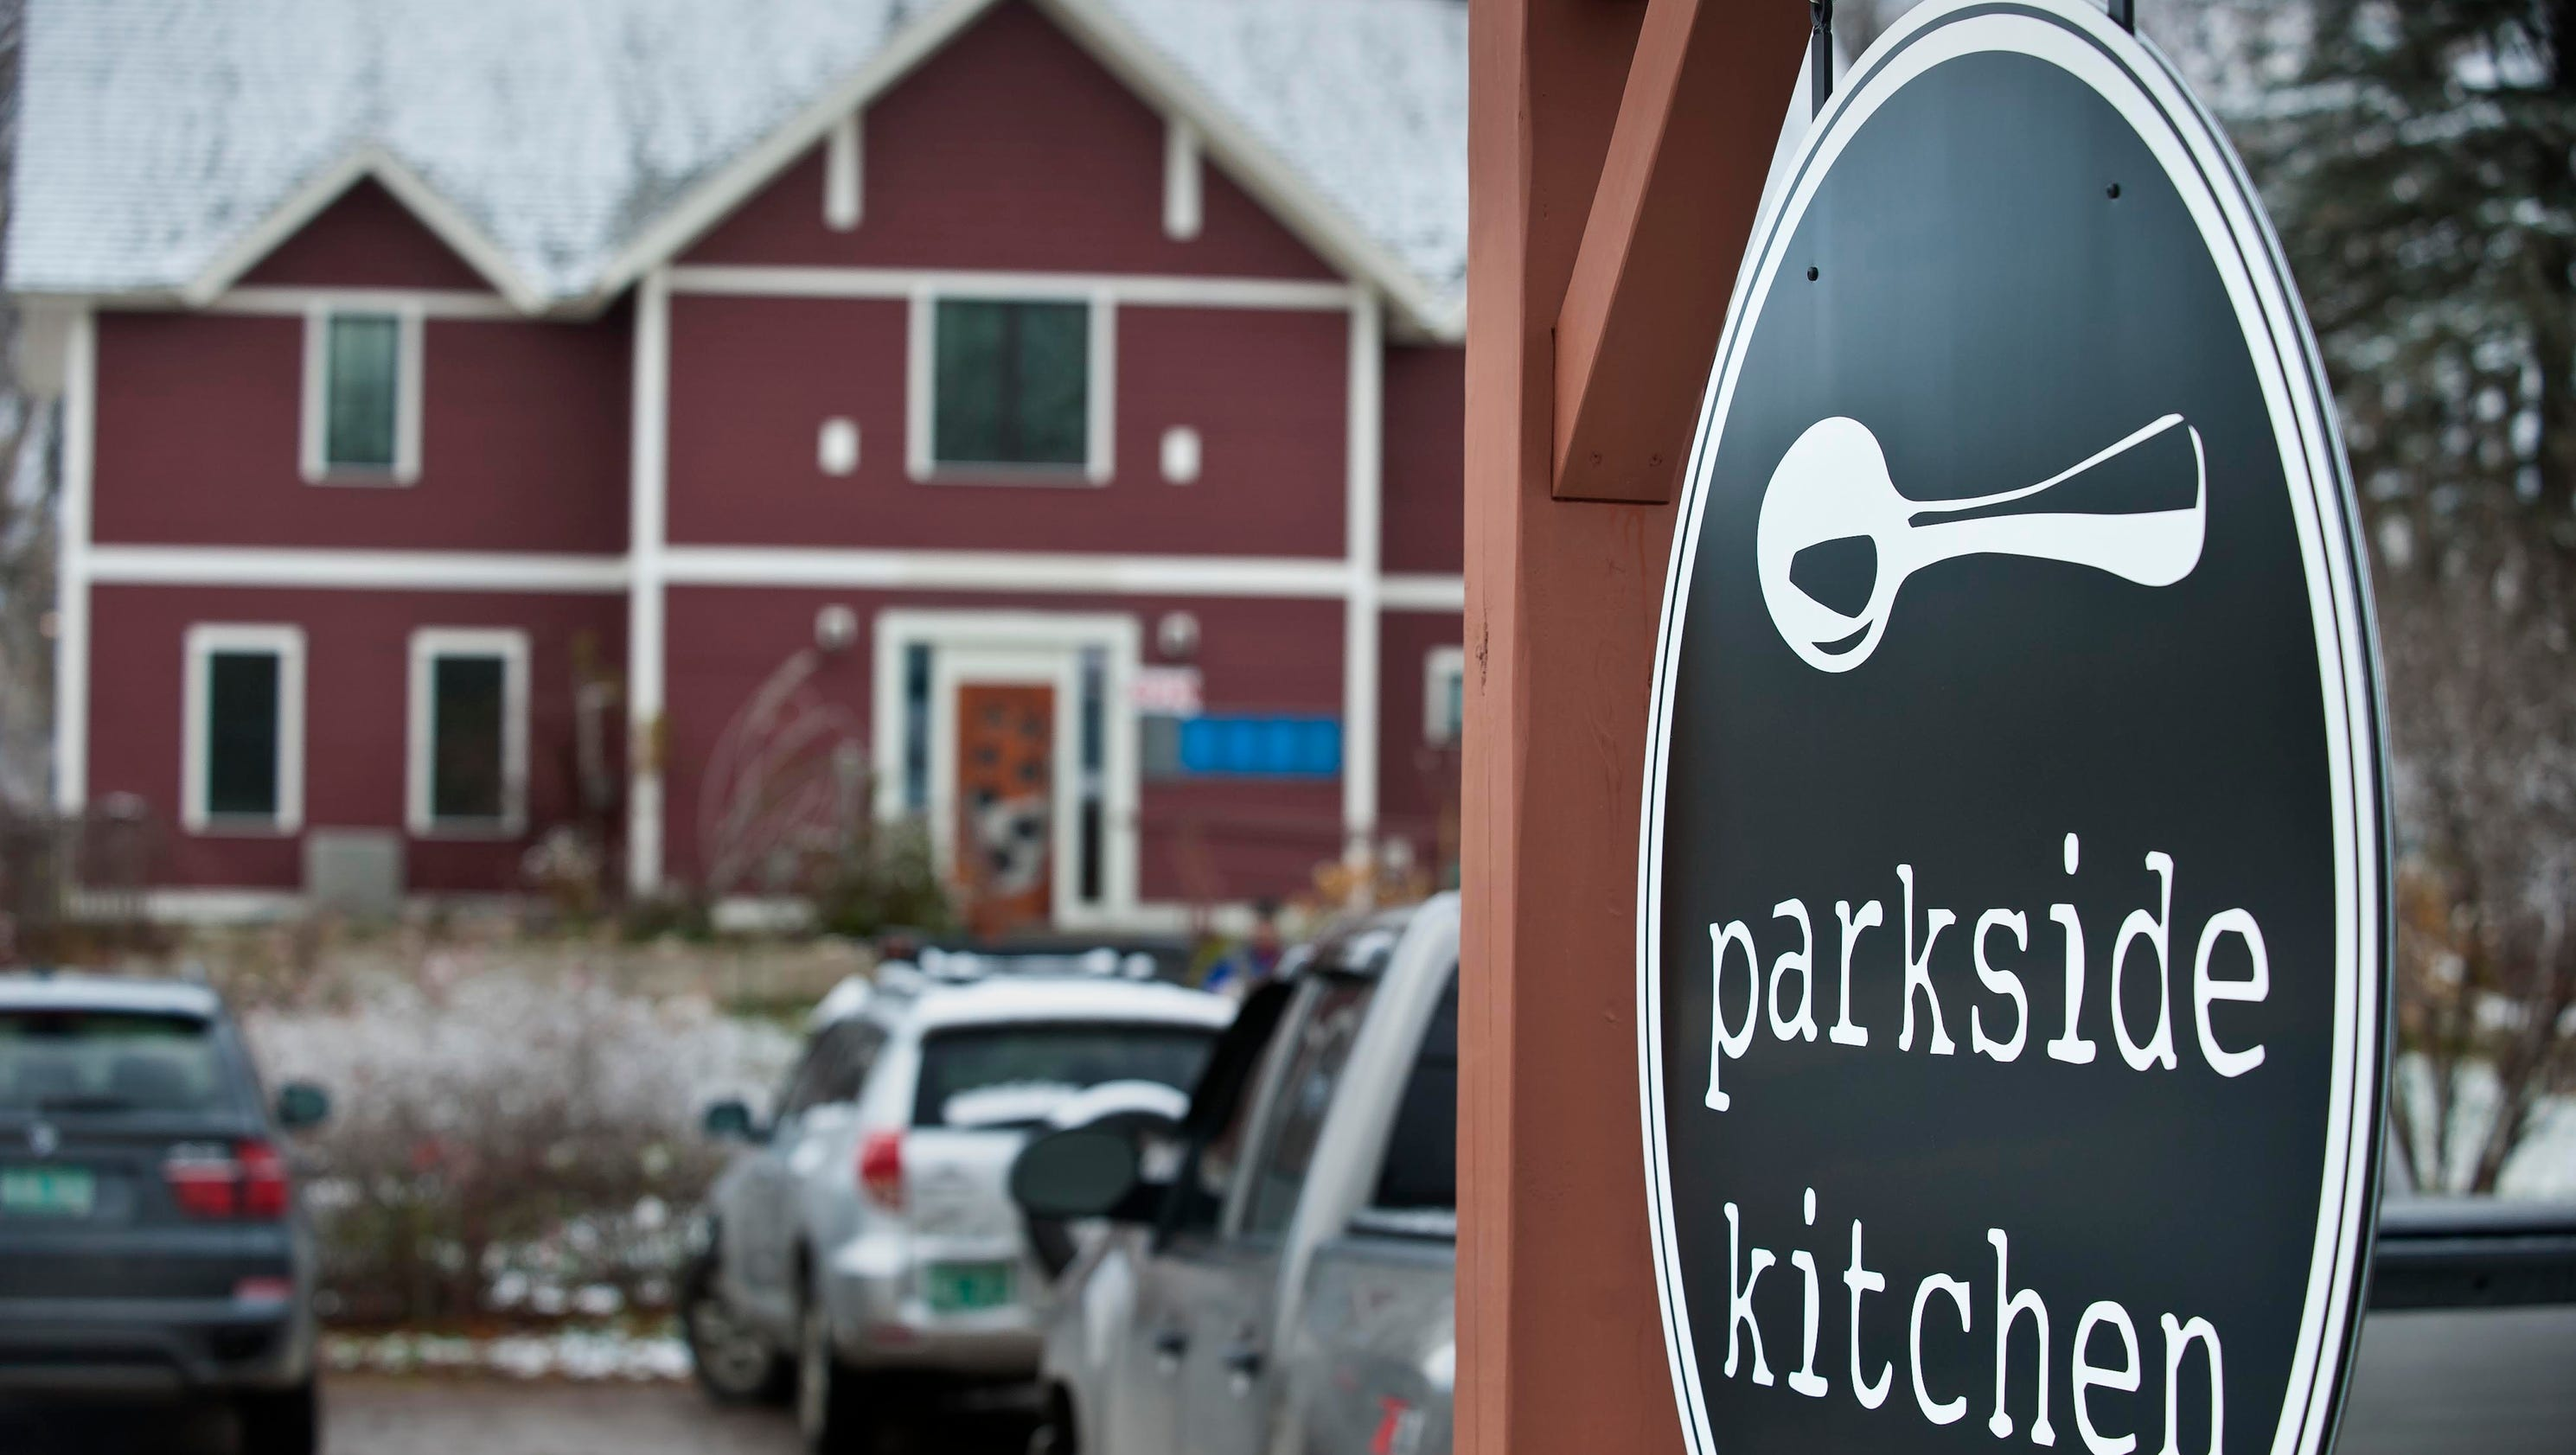 parkside kitchen in richmond to close sunday - Kitchen Table Bistro Richmond Vt